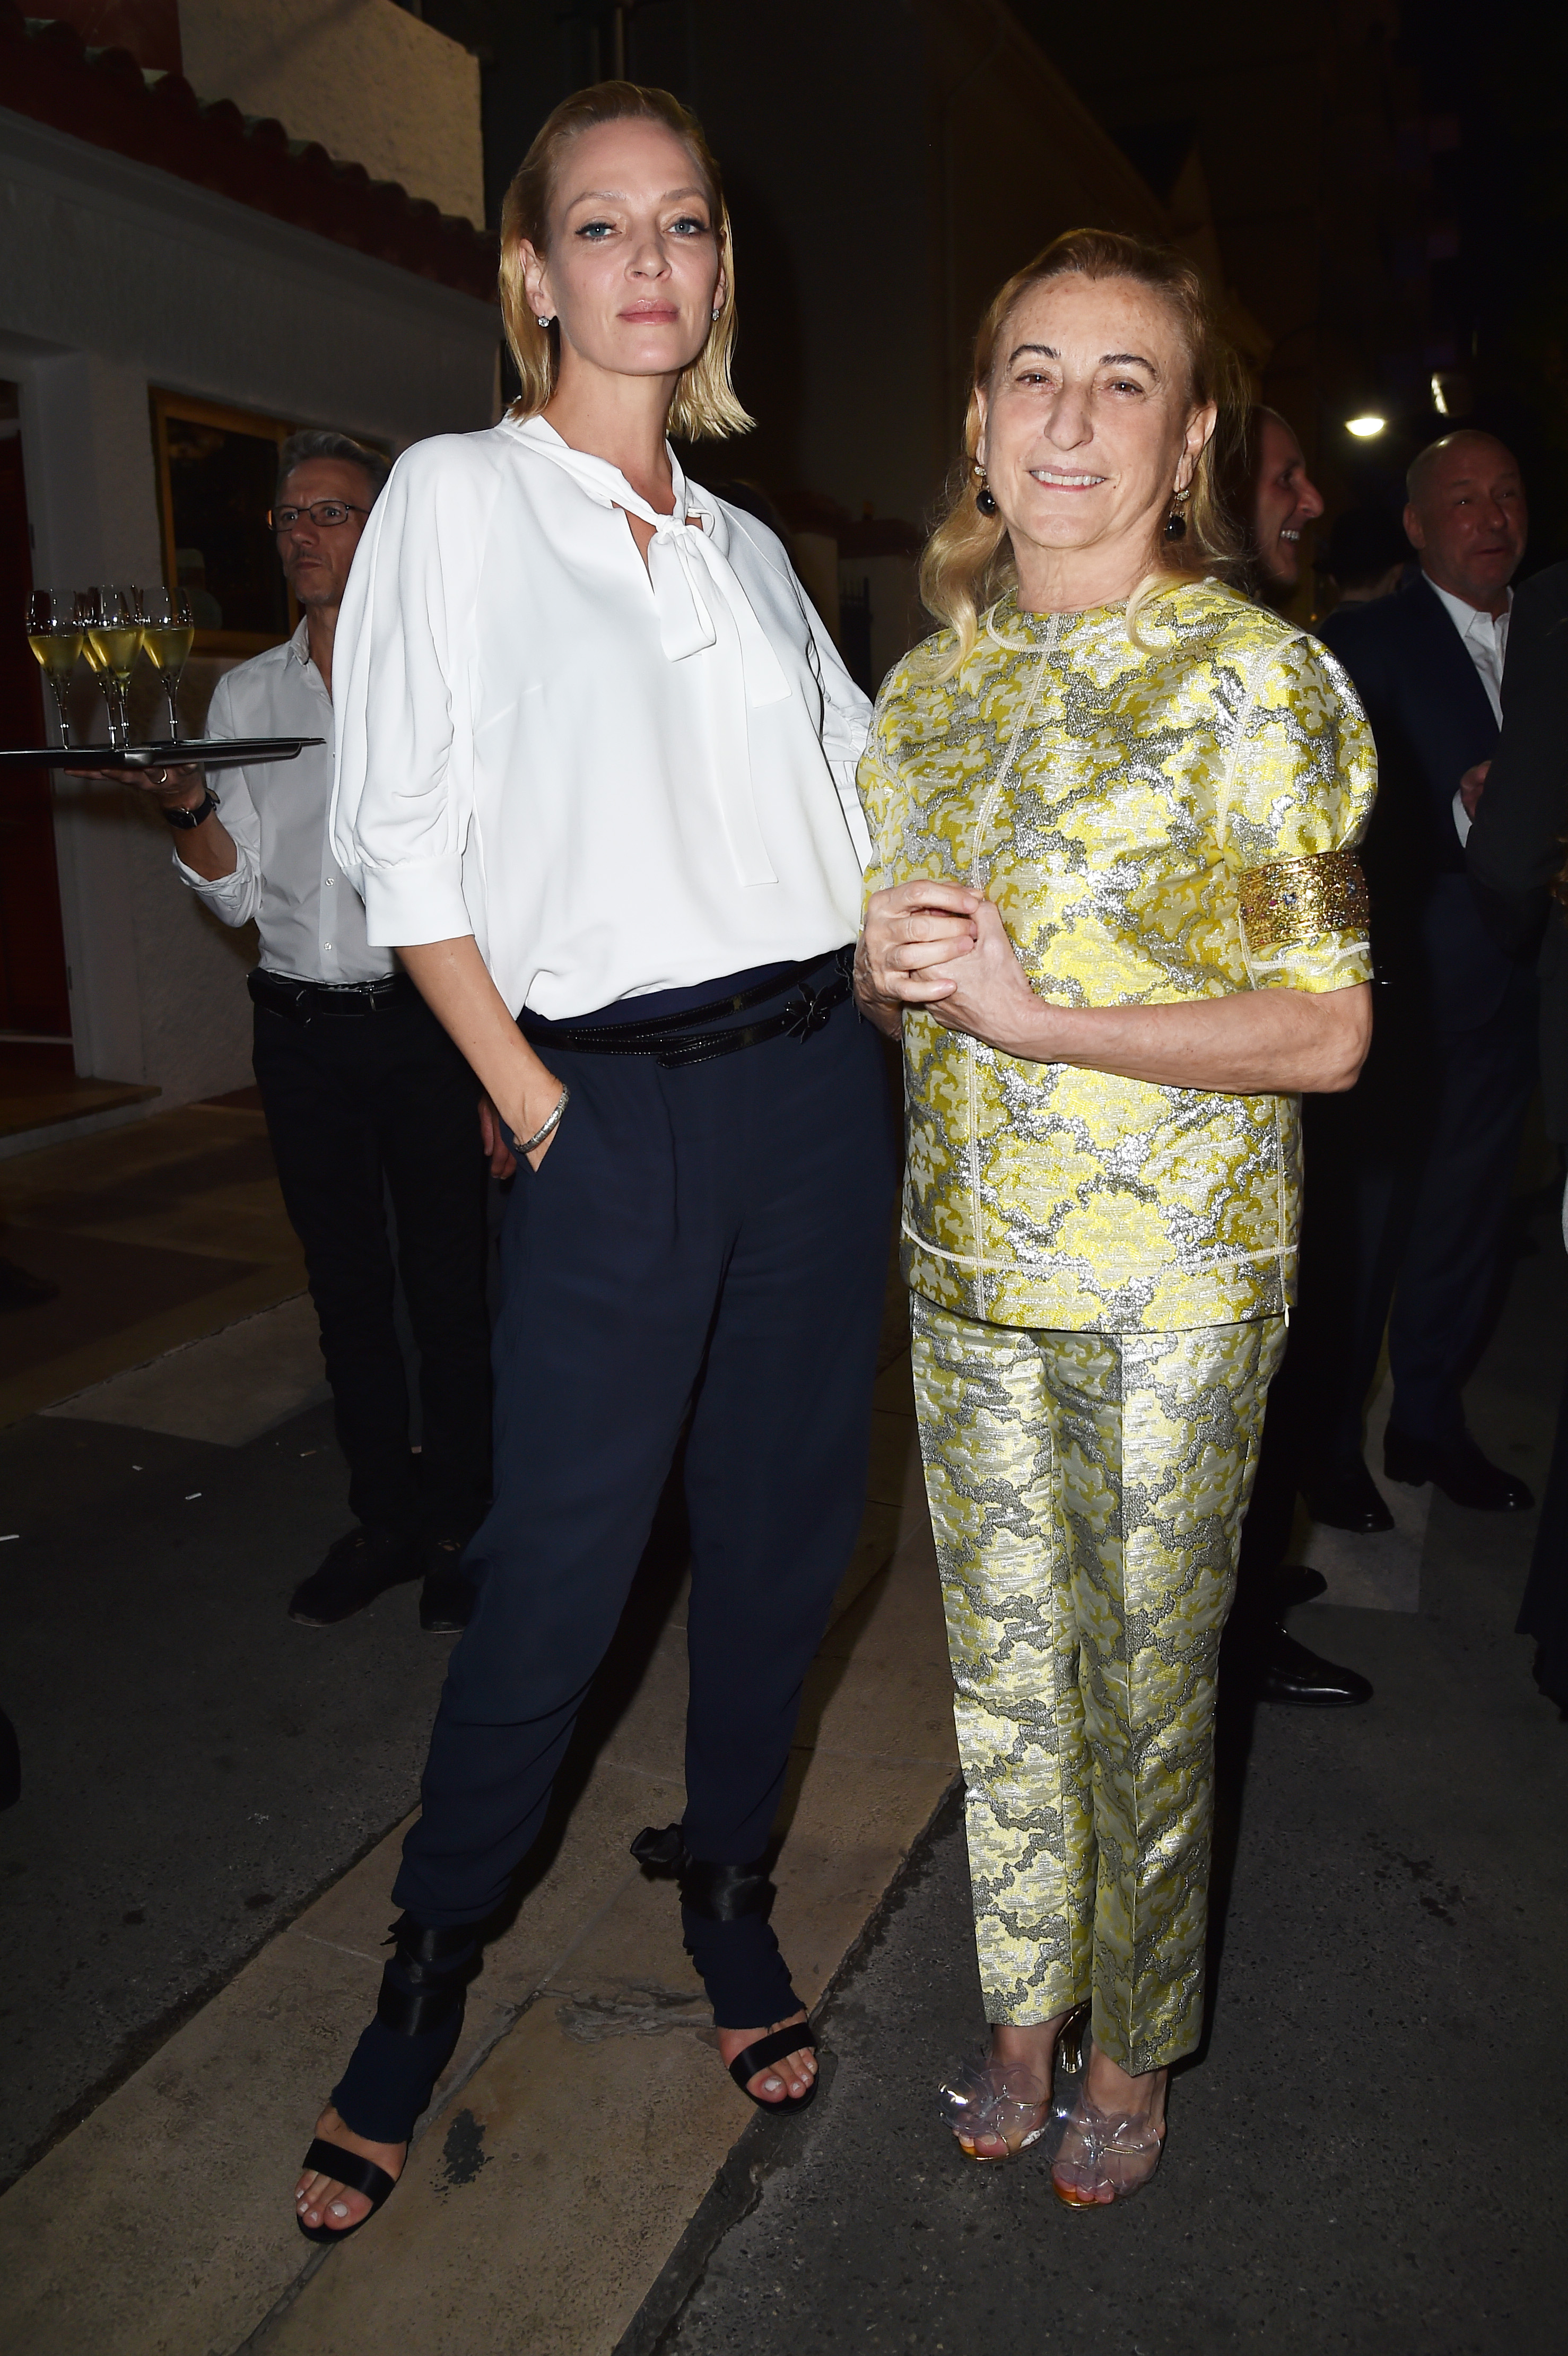 CANNES, FRANCE - MAY 22:  Uma Thurman and Miuccia Prada attend Prada Private Dinner during the 70th annual Cannes Film Festival at Restaurant Fred L'Ecailler on May 22, 2017 in Cannes, France.  (Photo by Jacopo Raule/Getty Images for Prada)